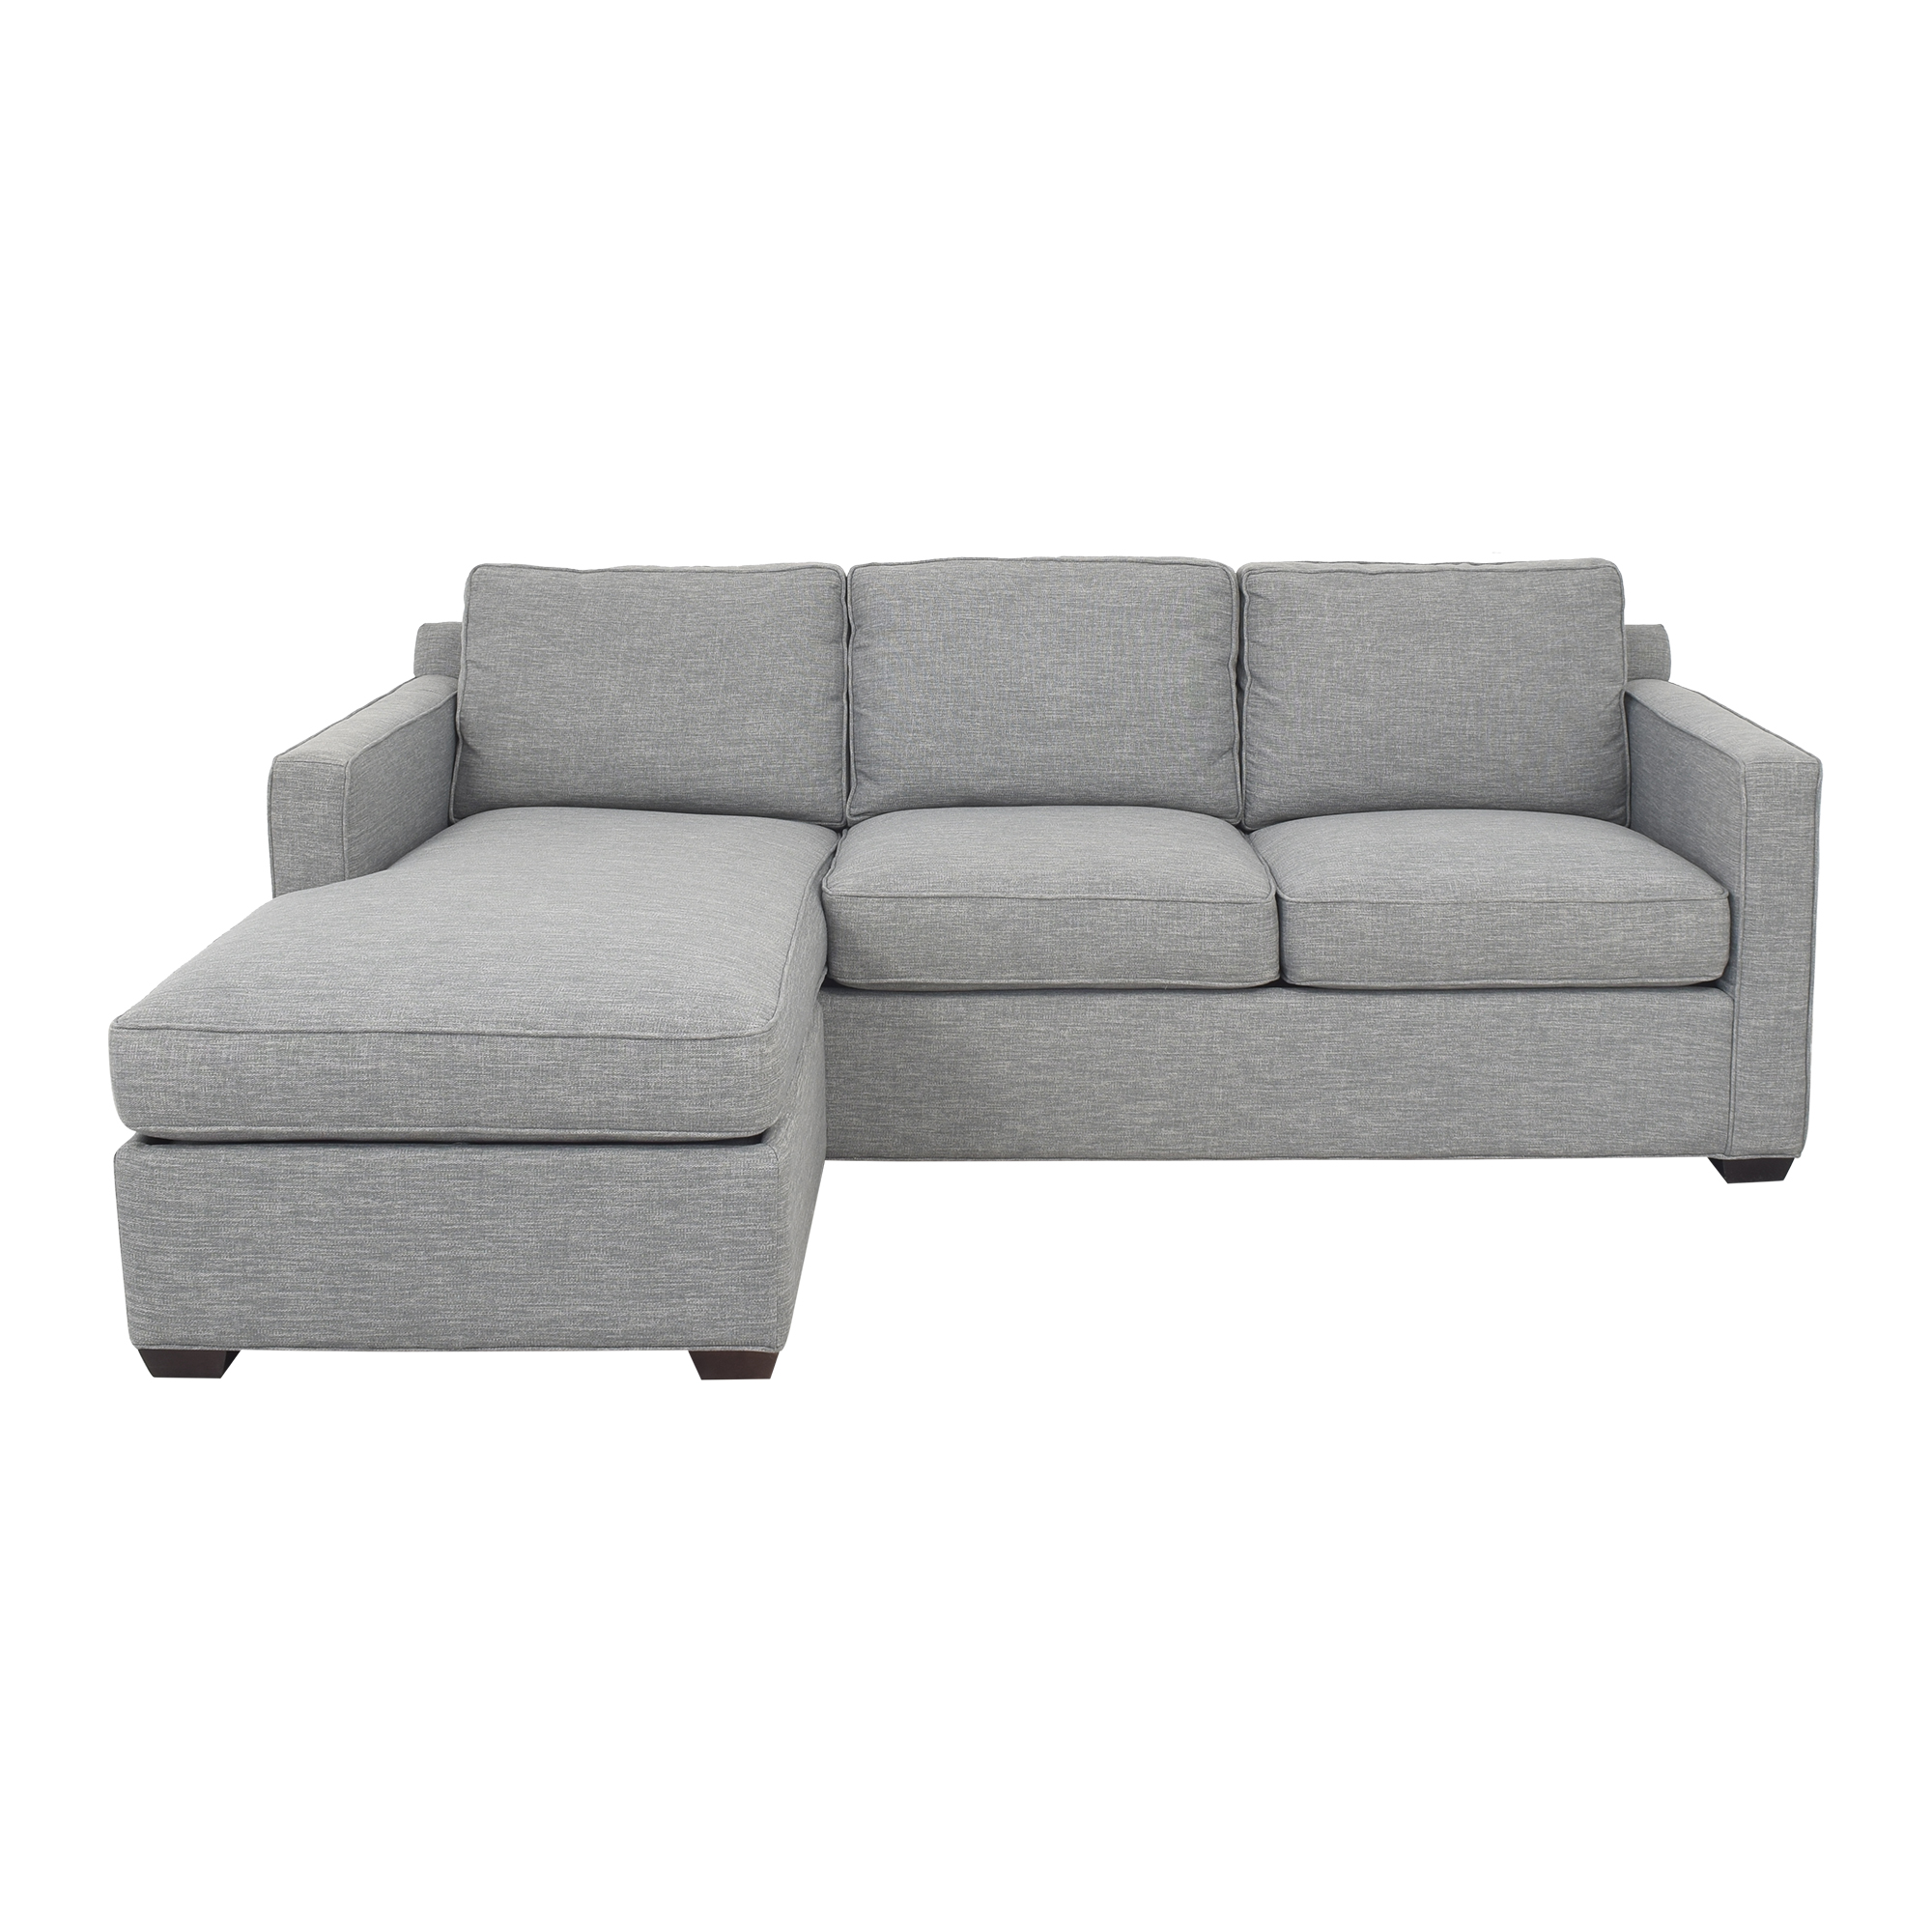 Crate & Barrel Barrett Reversible Sectional Sofa with Chaise sale